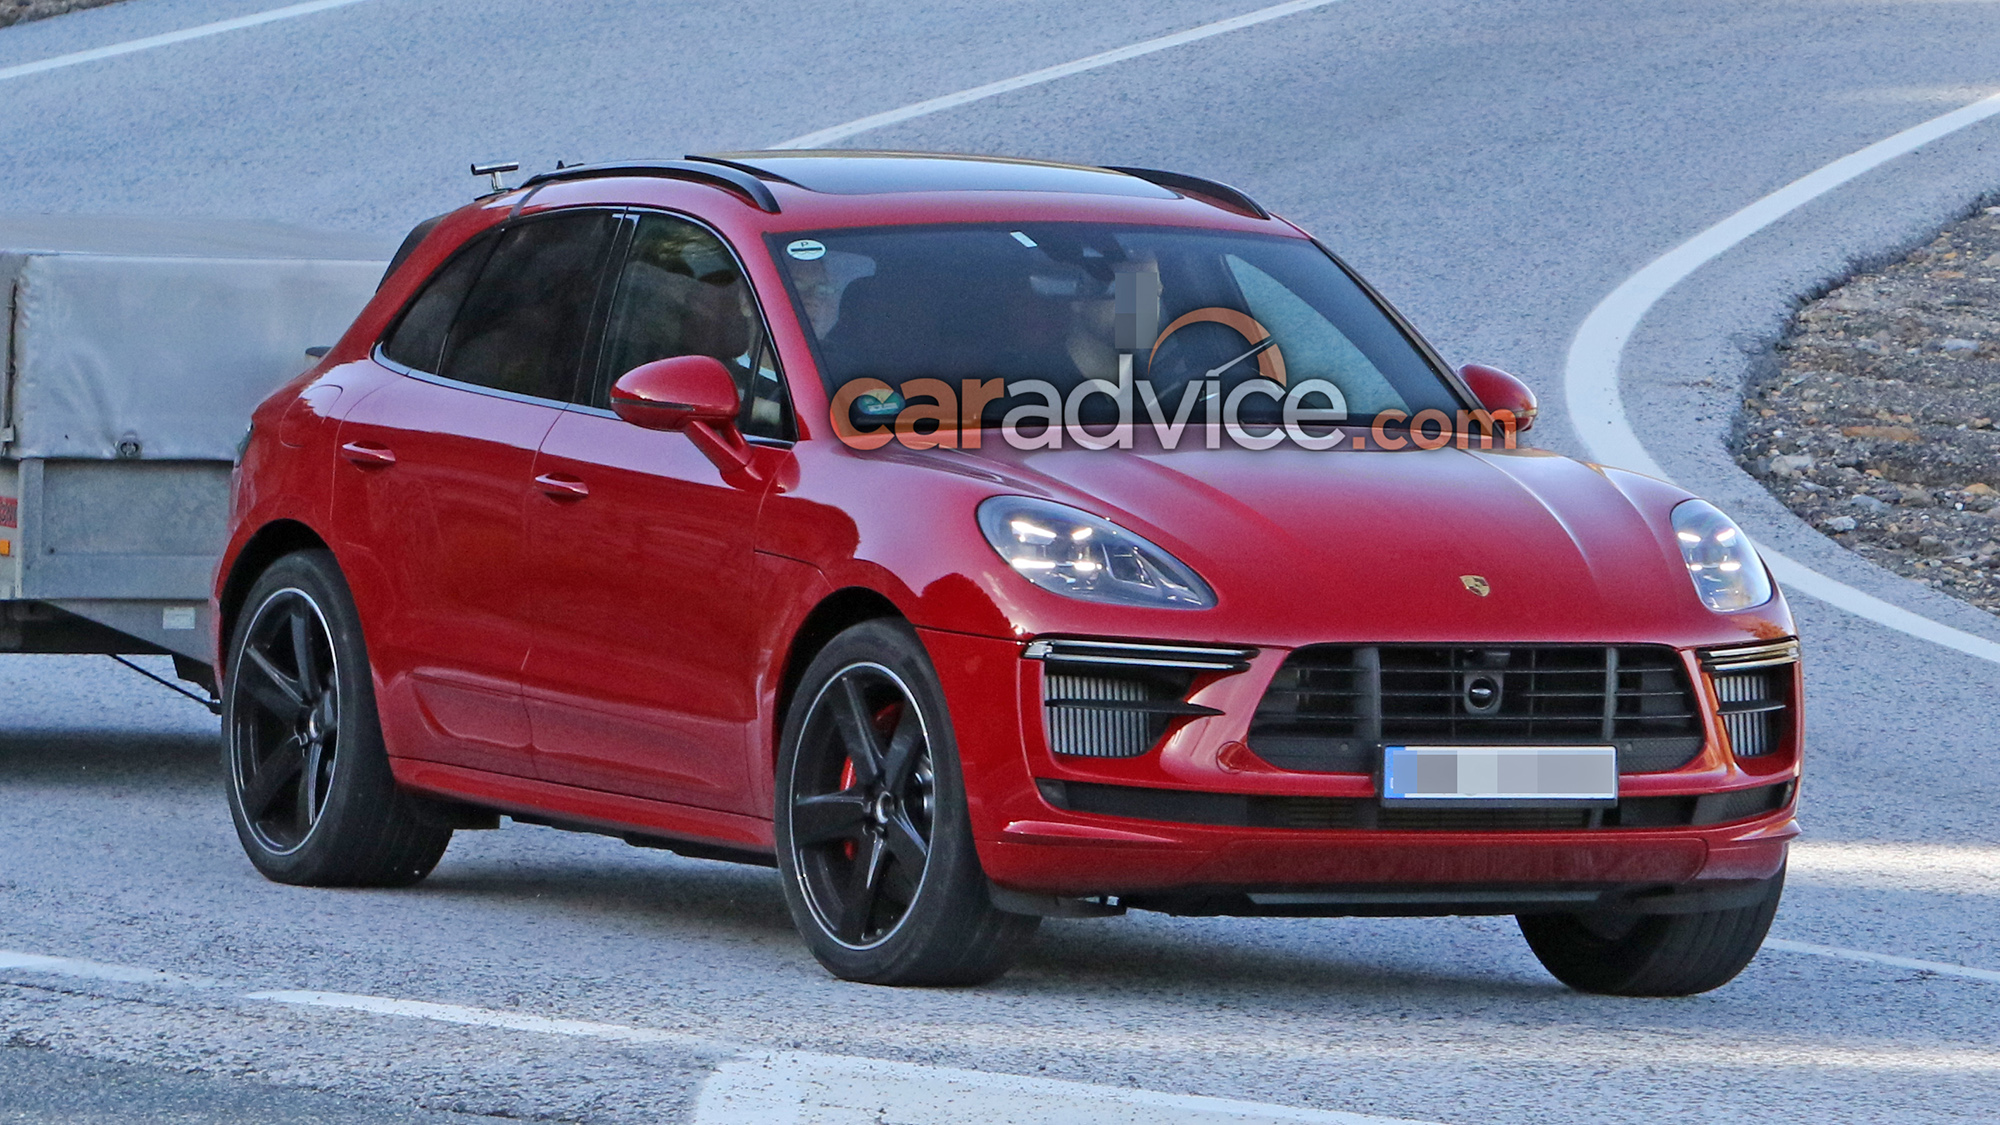 2019 Porsche Macan Turbo Spied Sans Camouflage Caradvice